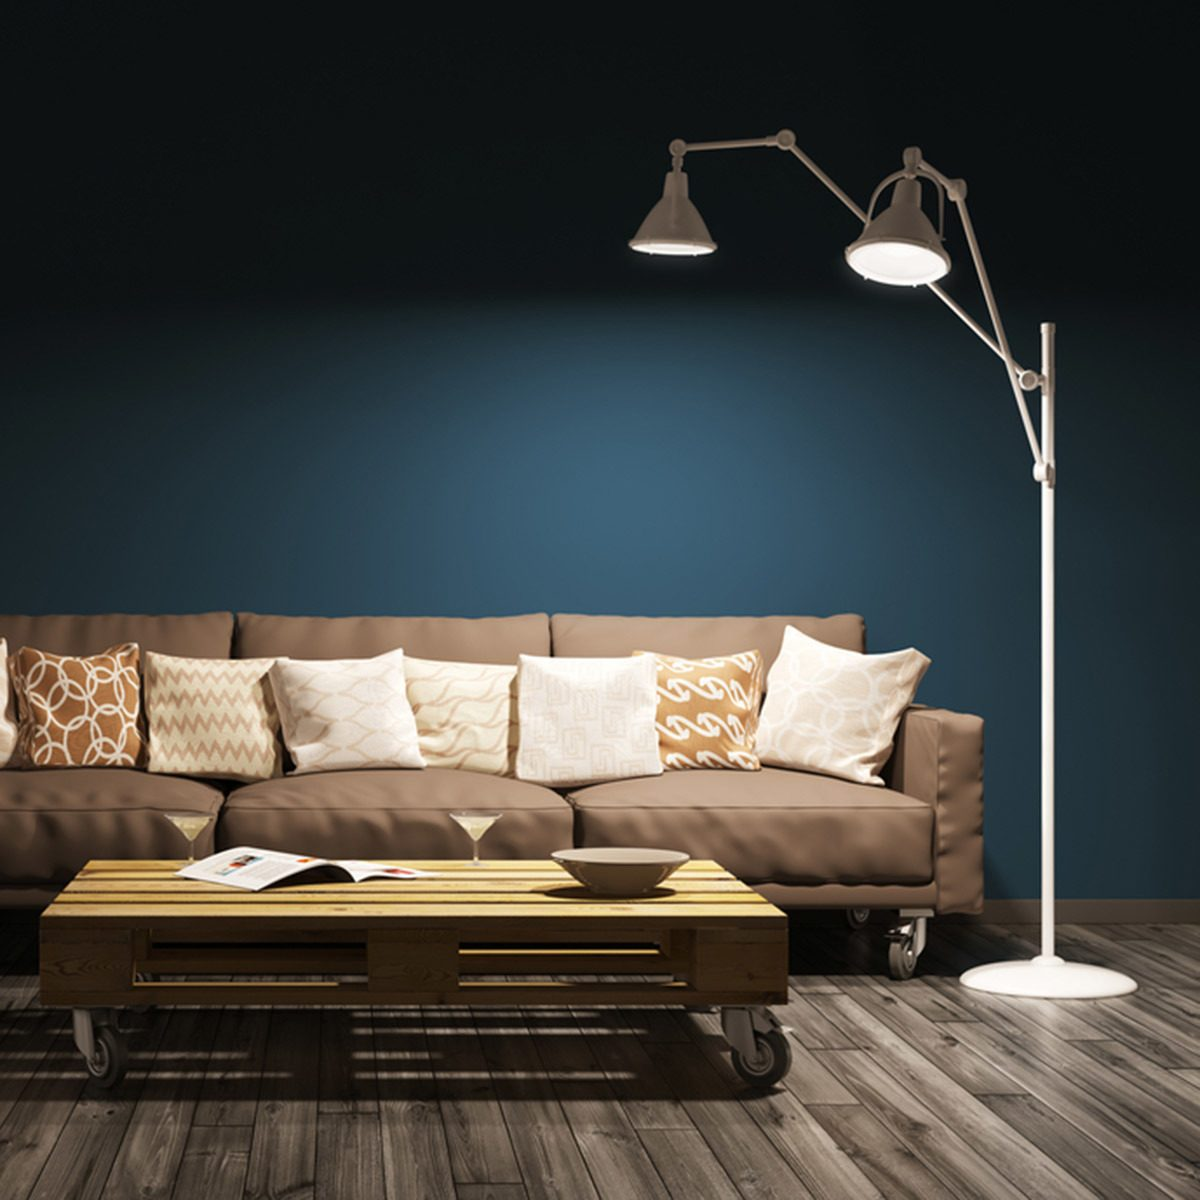 Choose a Long-Reach Floor Lamp